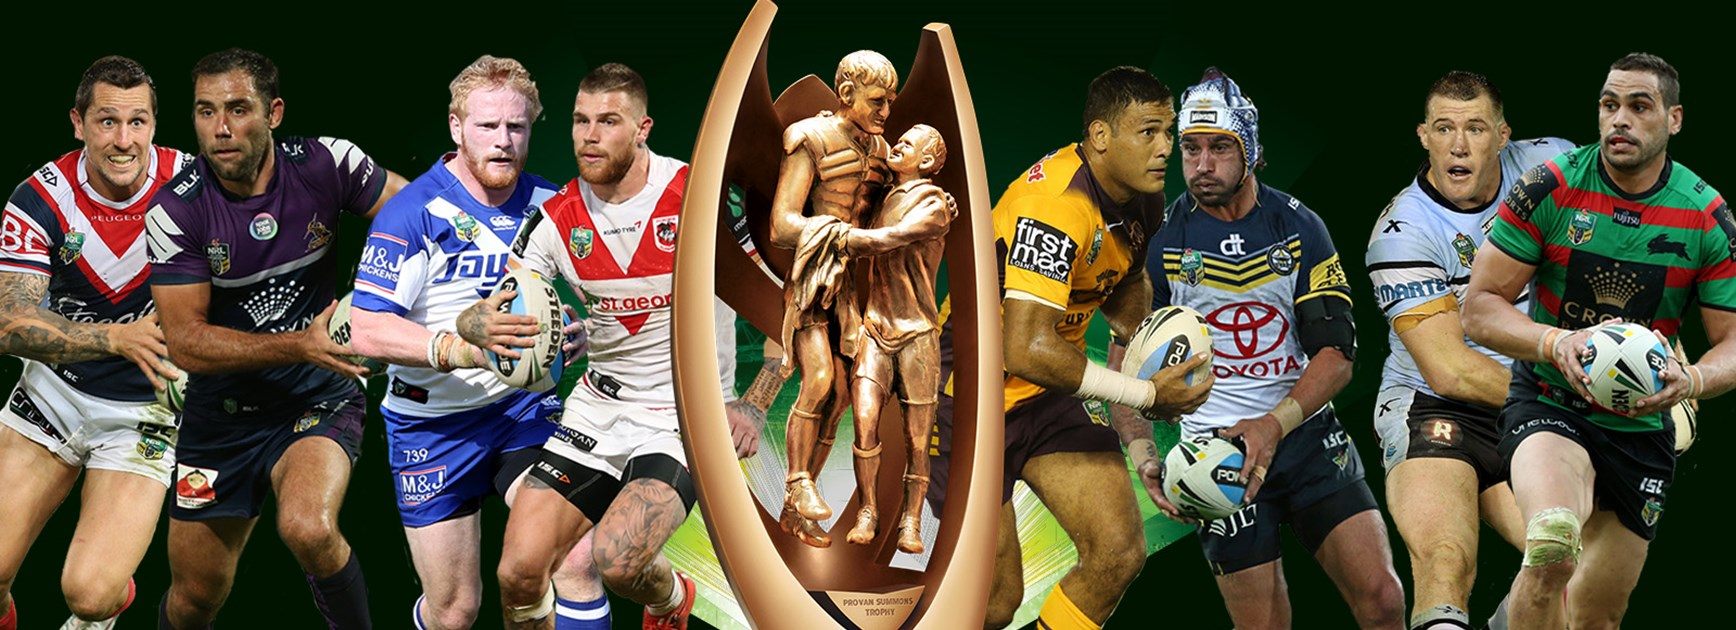 Welcome to the NRL Telstra Premiership Finals Series.